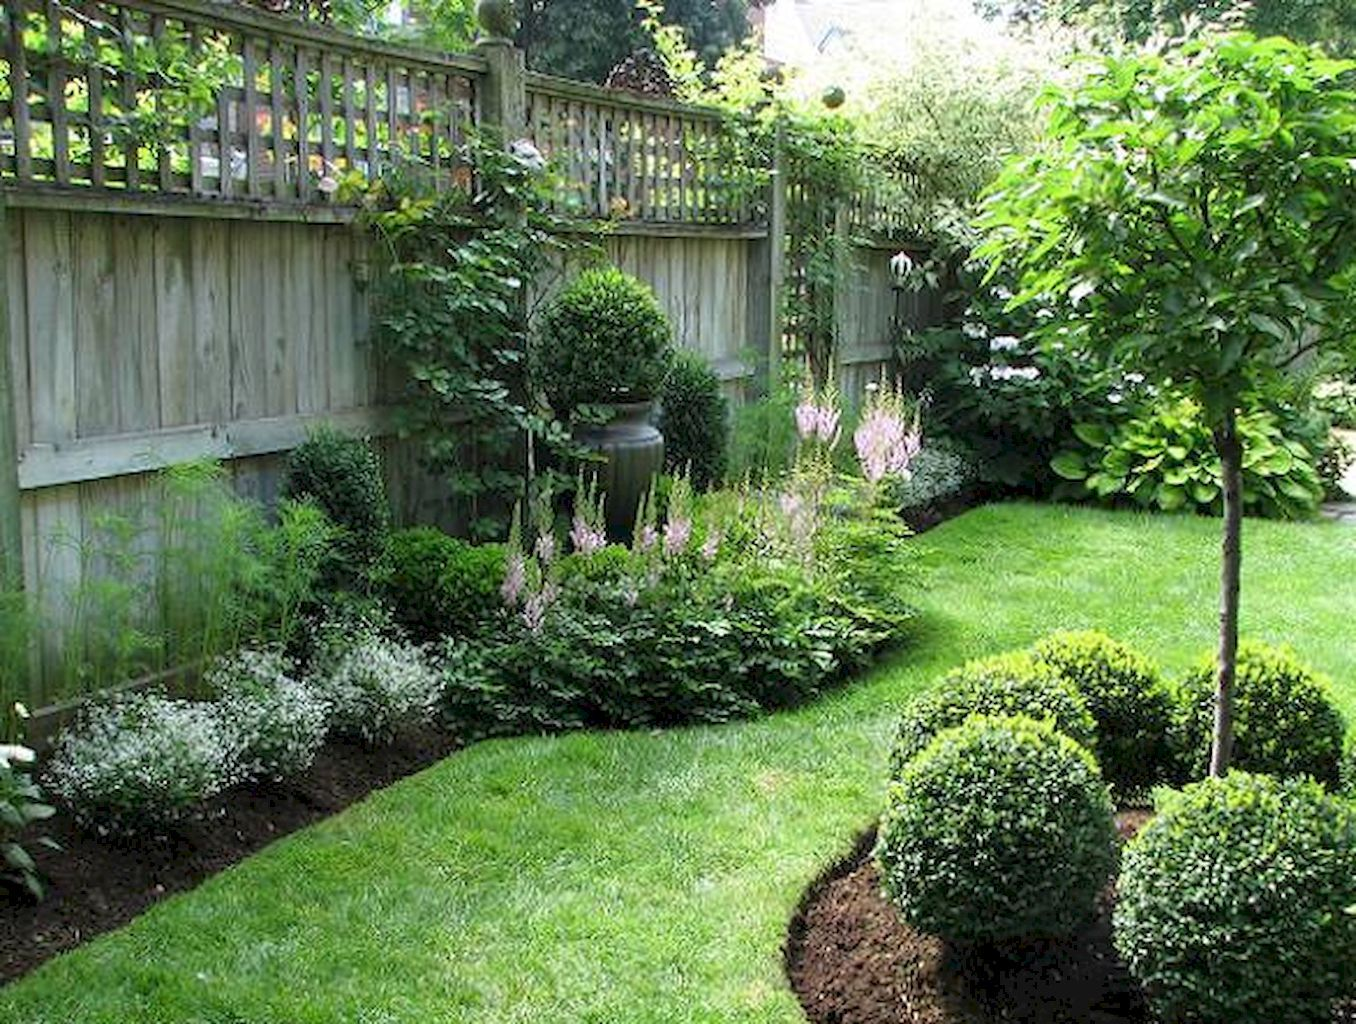 Backyard Privacy Fence Landscaping Ideas On A Budget 2 Backyard Landscaping Designs Privacy Fence Landscaping Backyard Landscaping